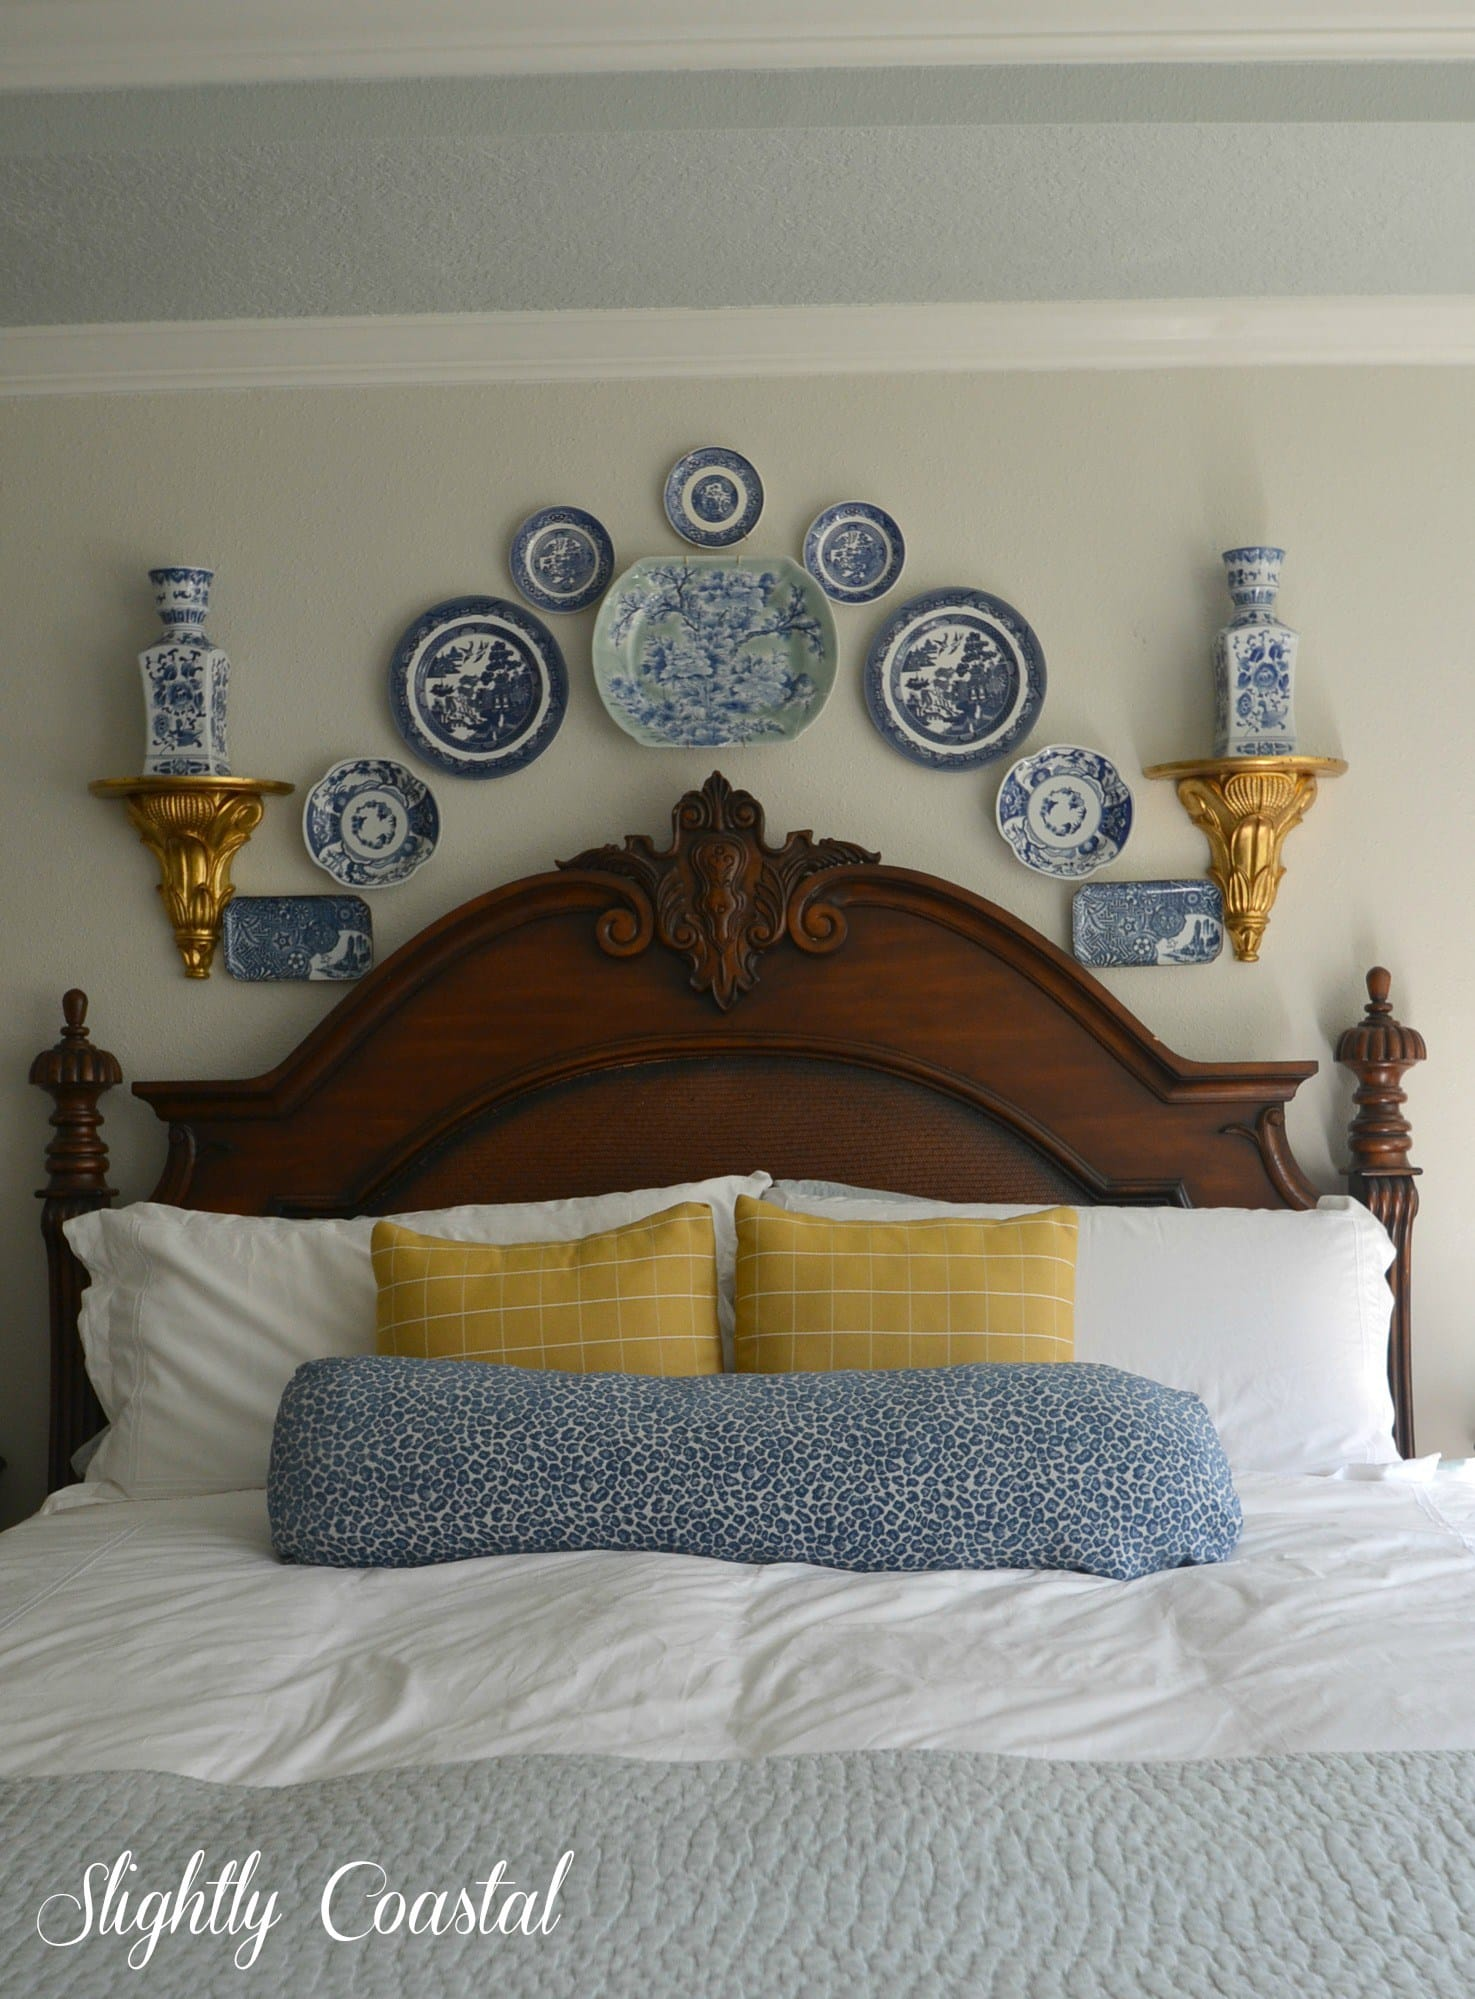 SIOMT Feature - Blue and White Plate Wall